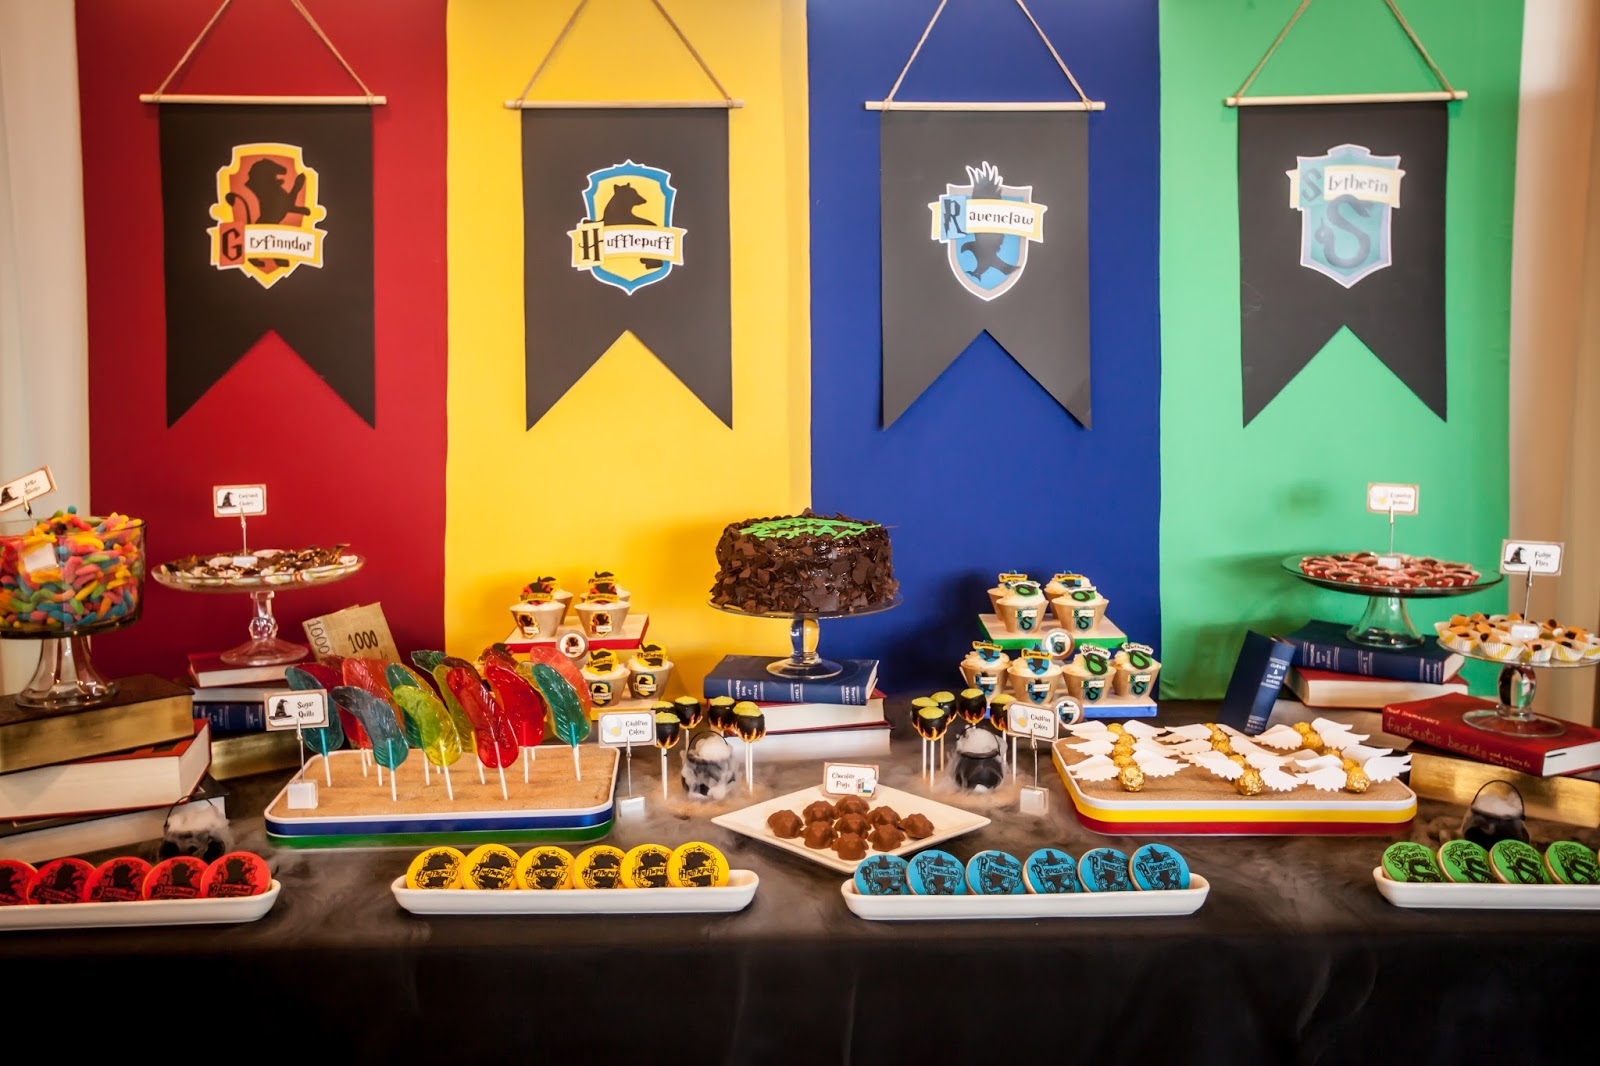 The Party Wall Harry Potter Inspired Party Part 1